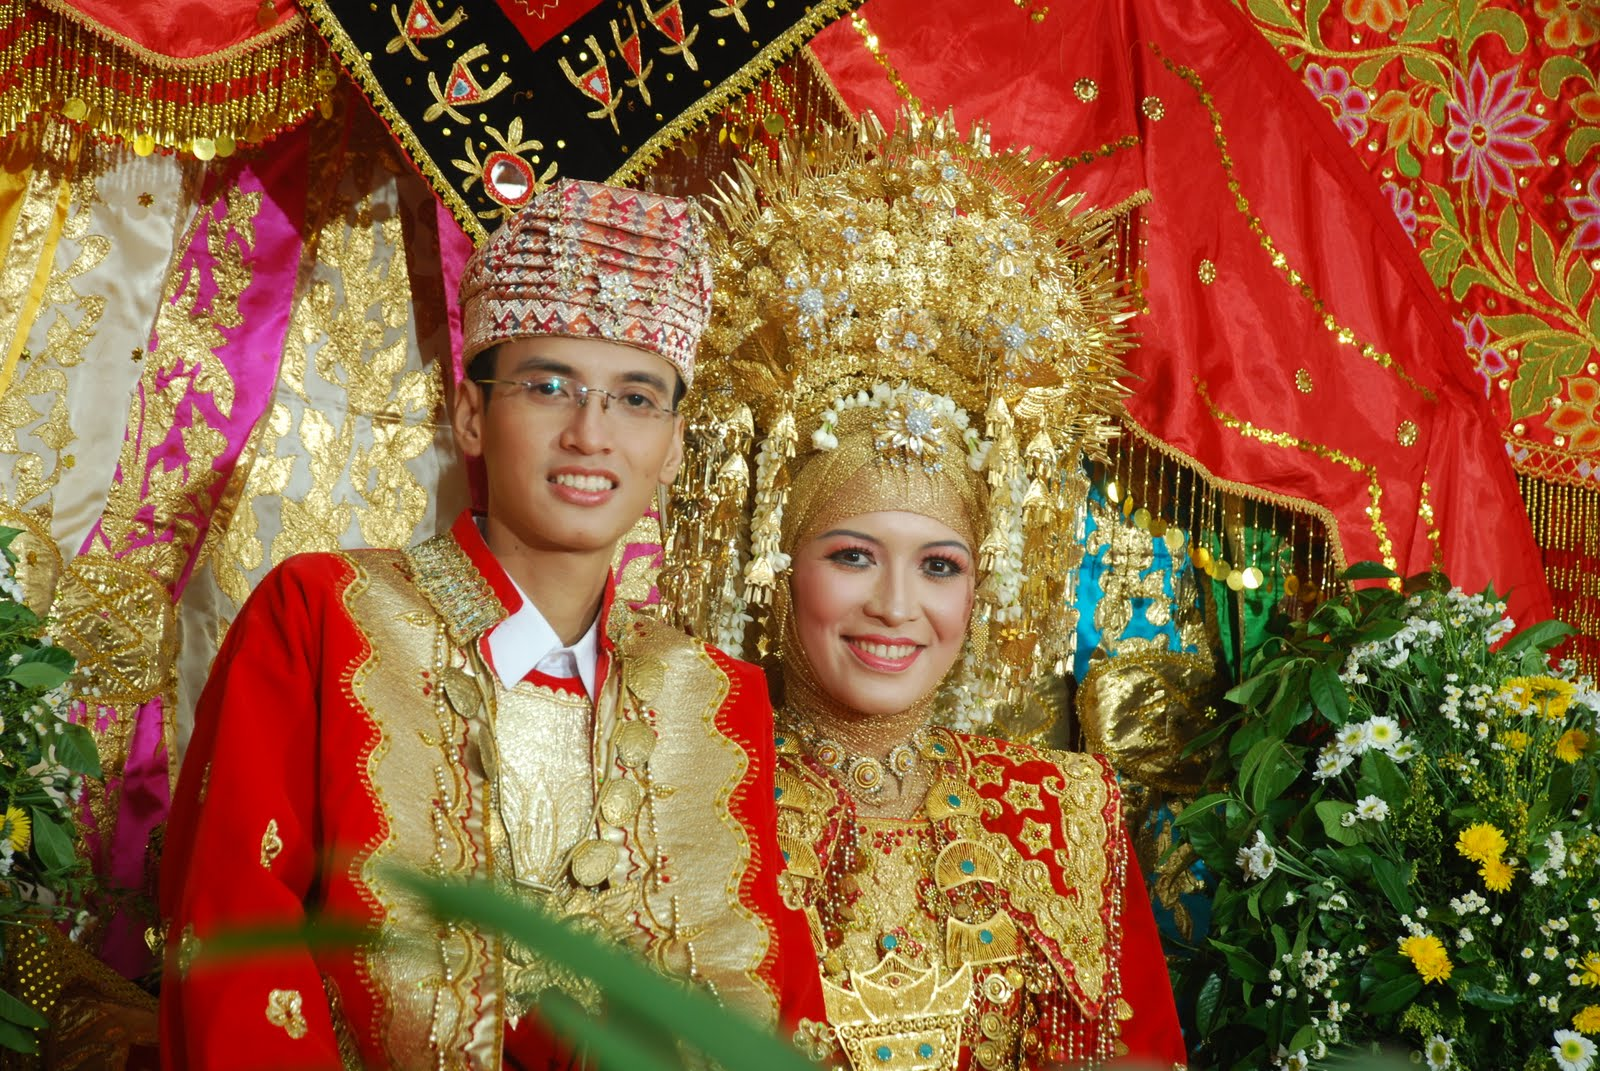 wedding customs by country minangkabau wedding customs edit